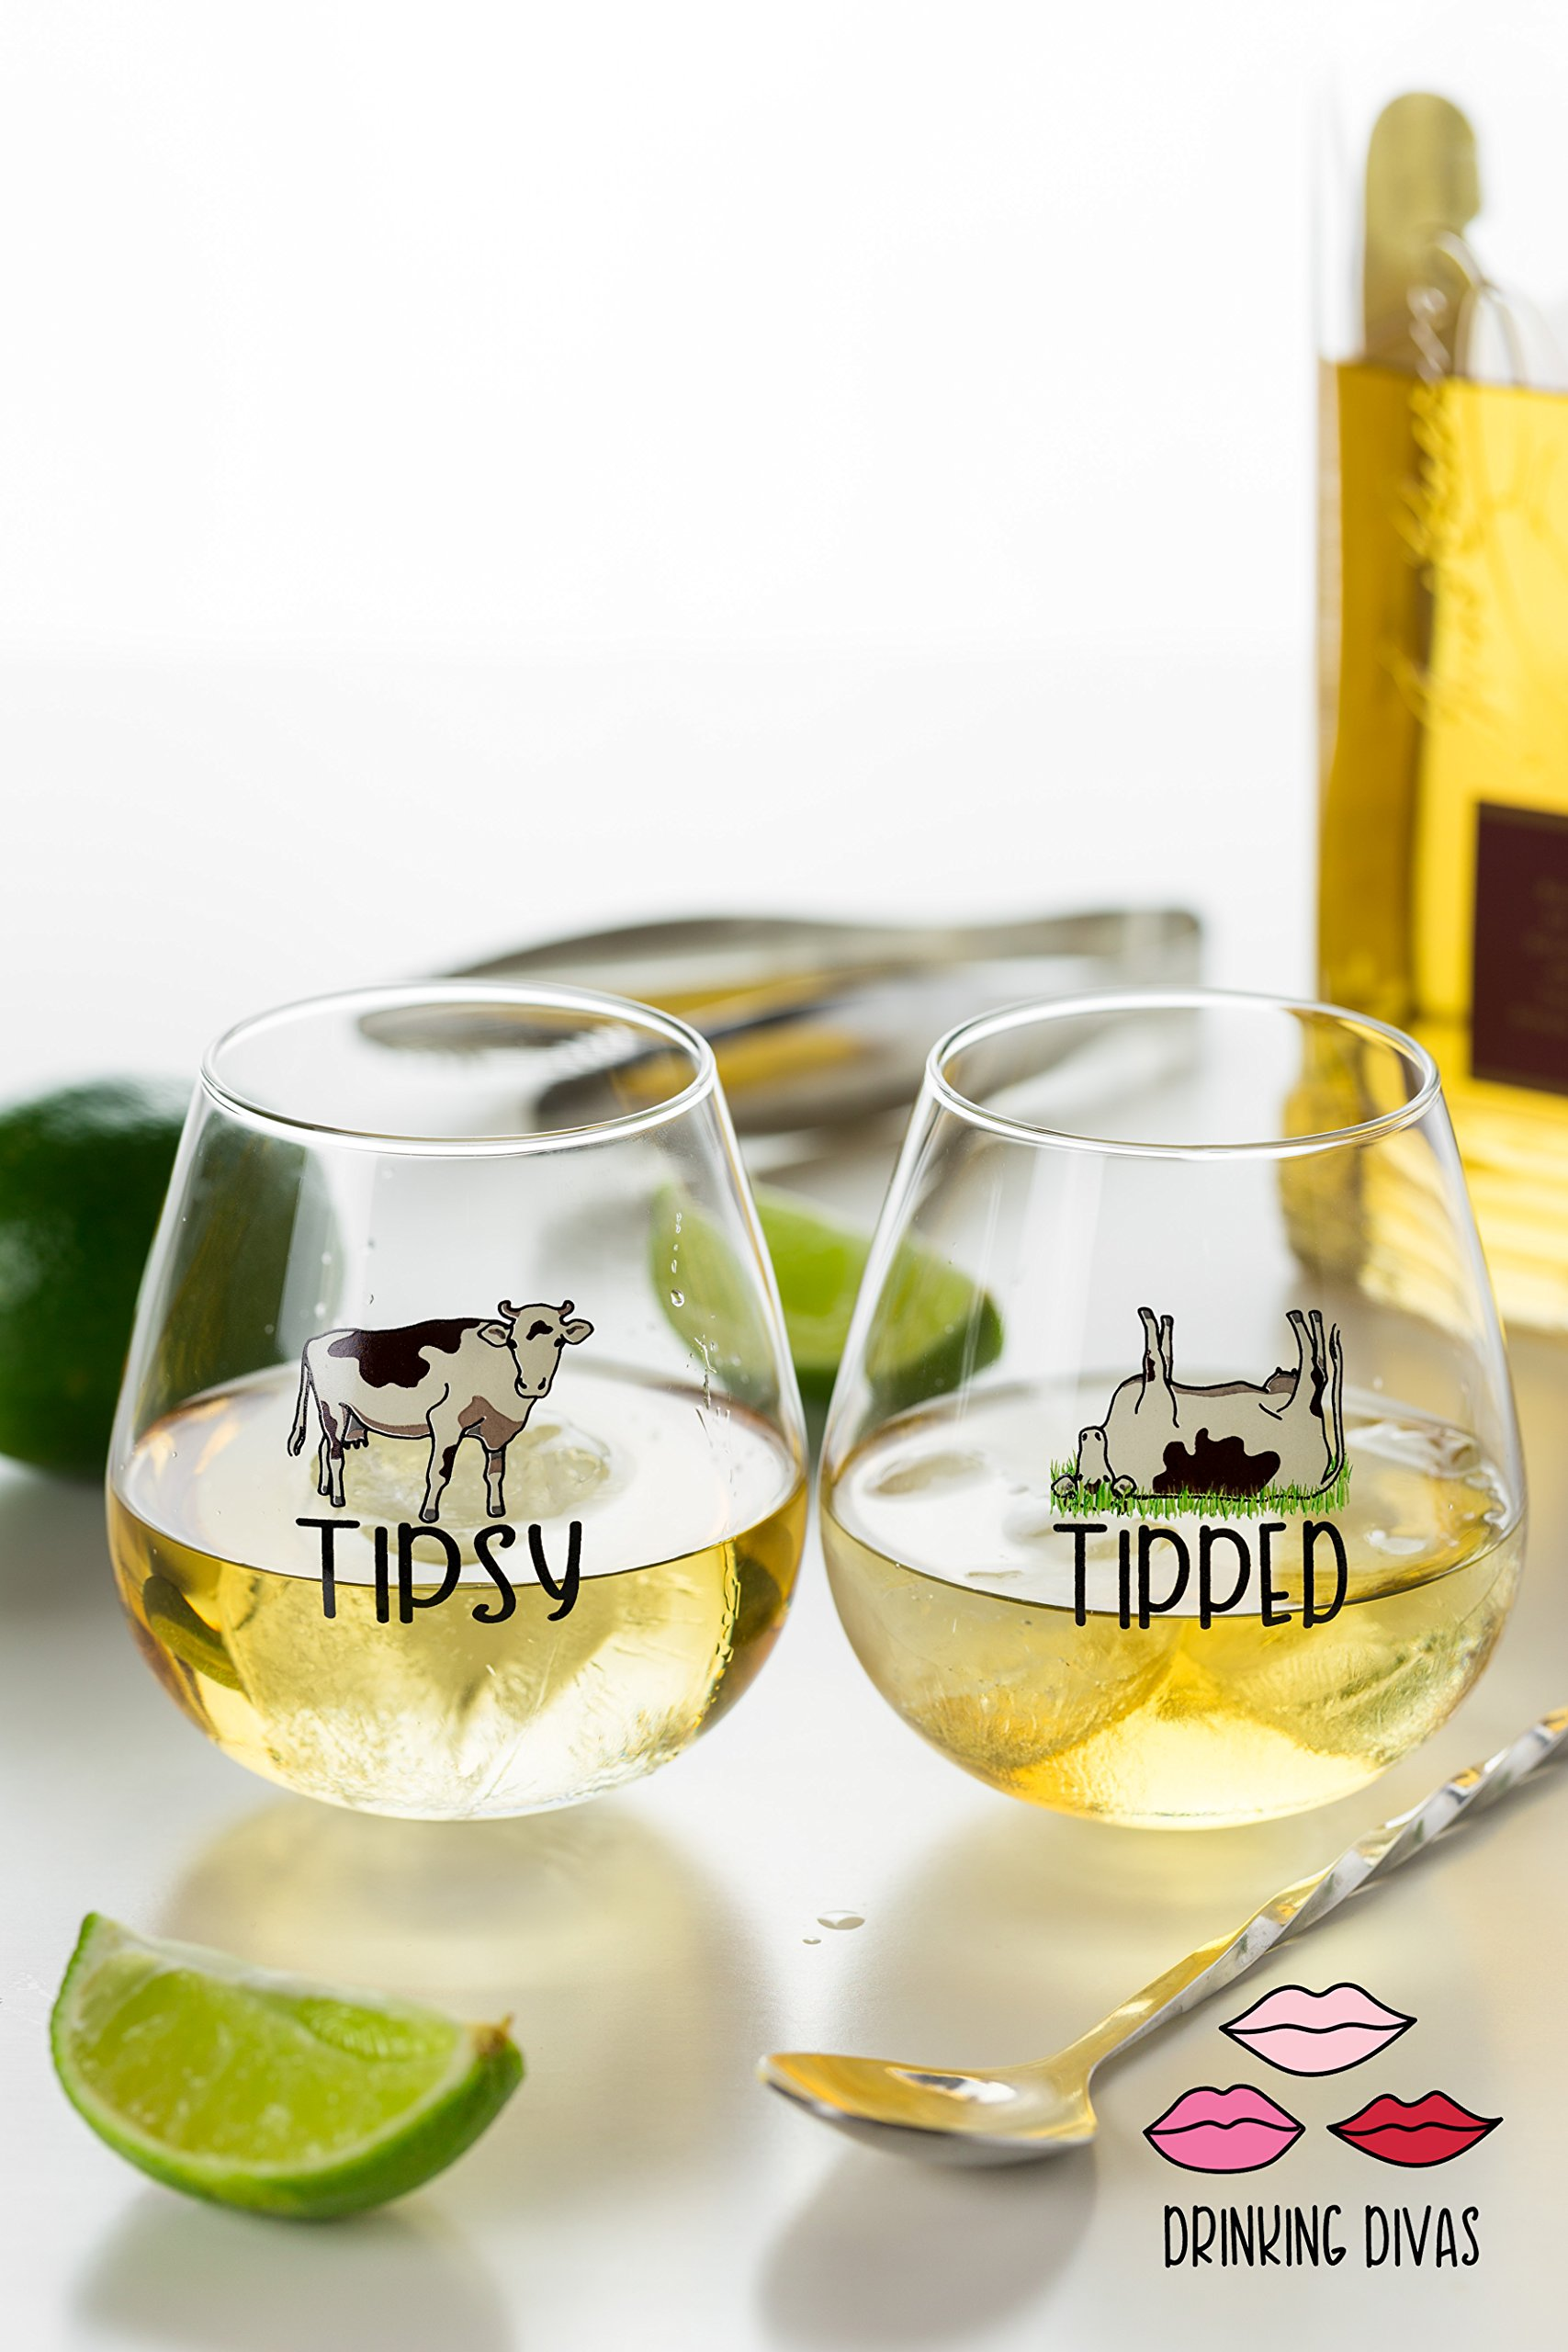 bcfda9ac8b9 Details about Drinking Divas 'Tipsy' and 'Tipped' Wine Glasses - Set of 2  Stemless Rolling